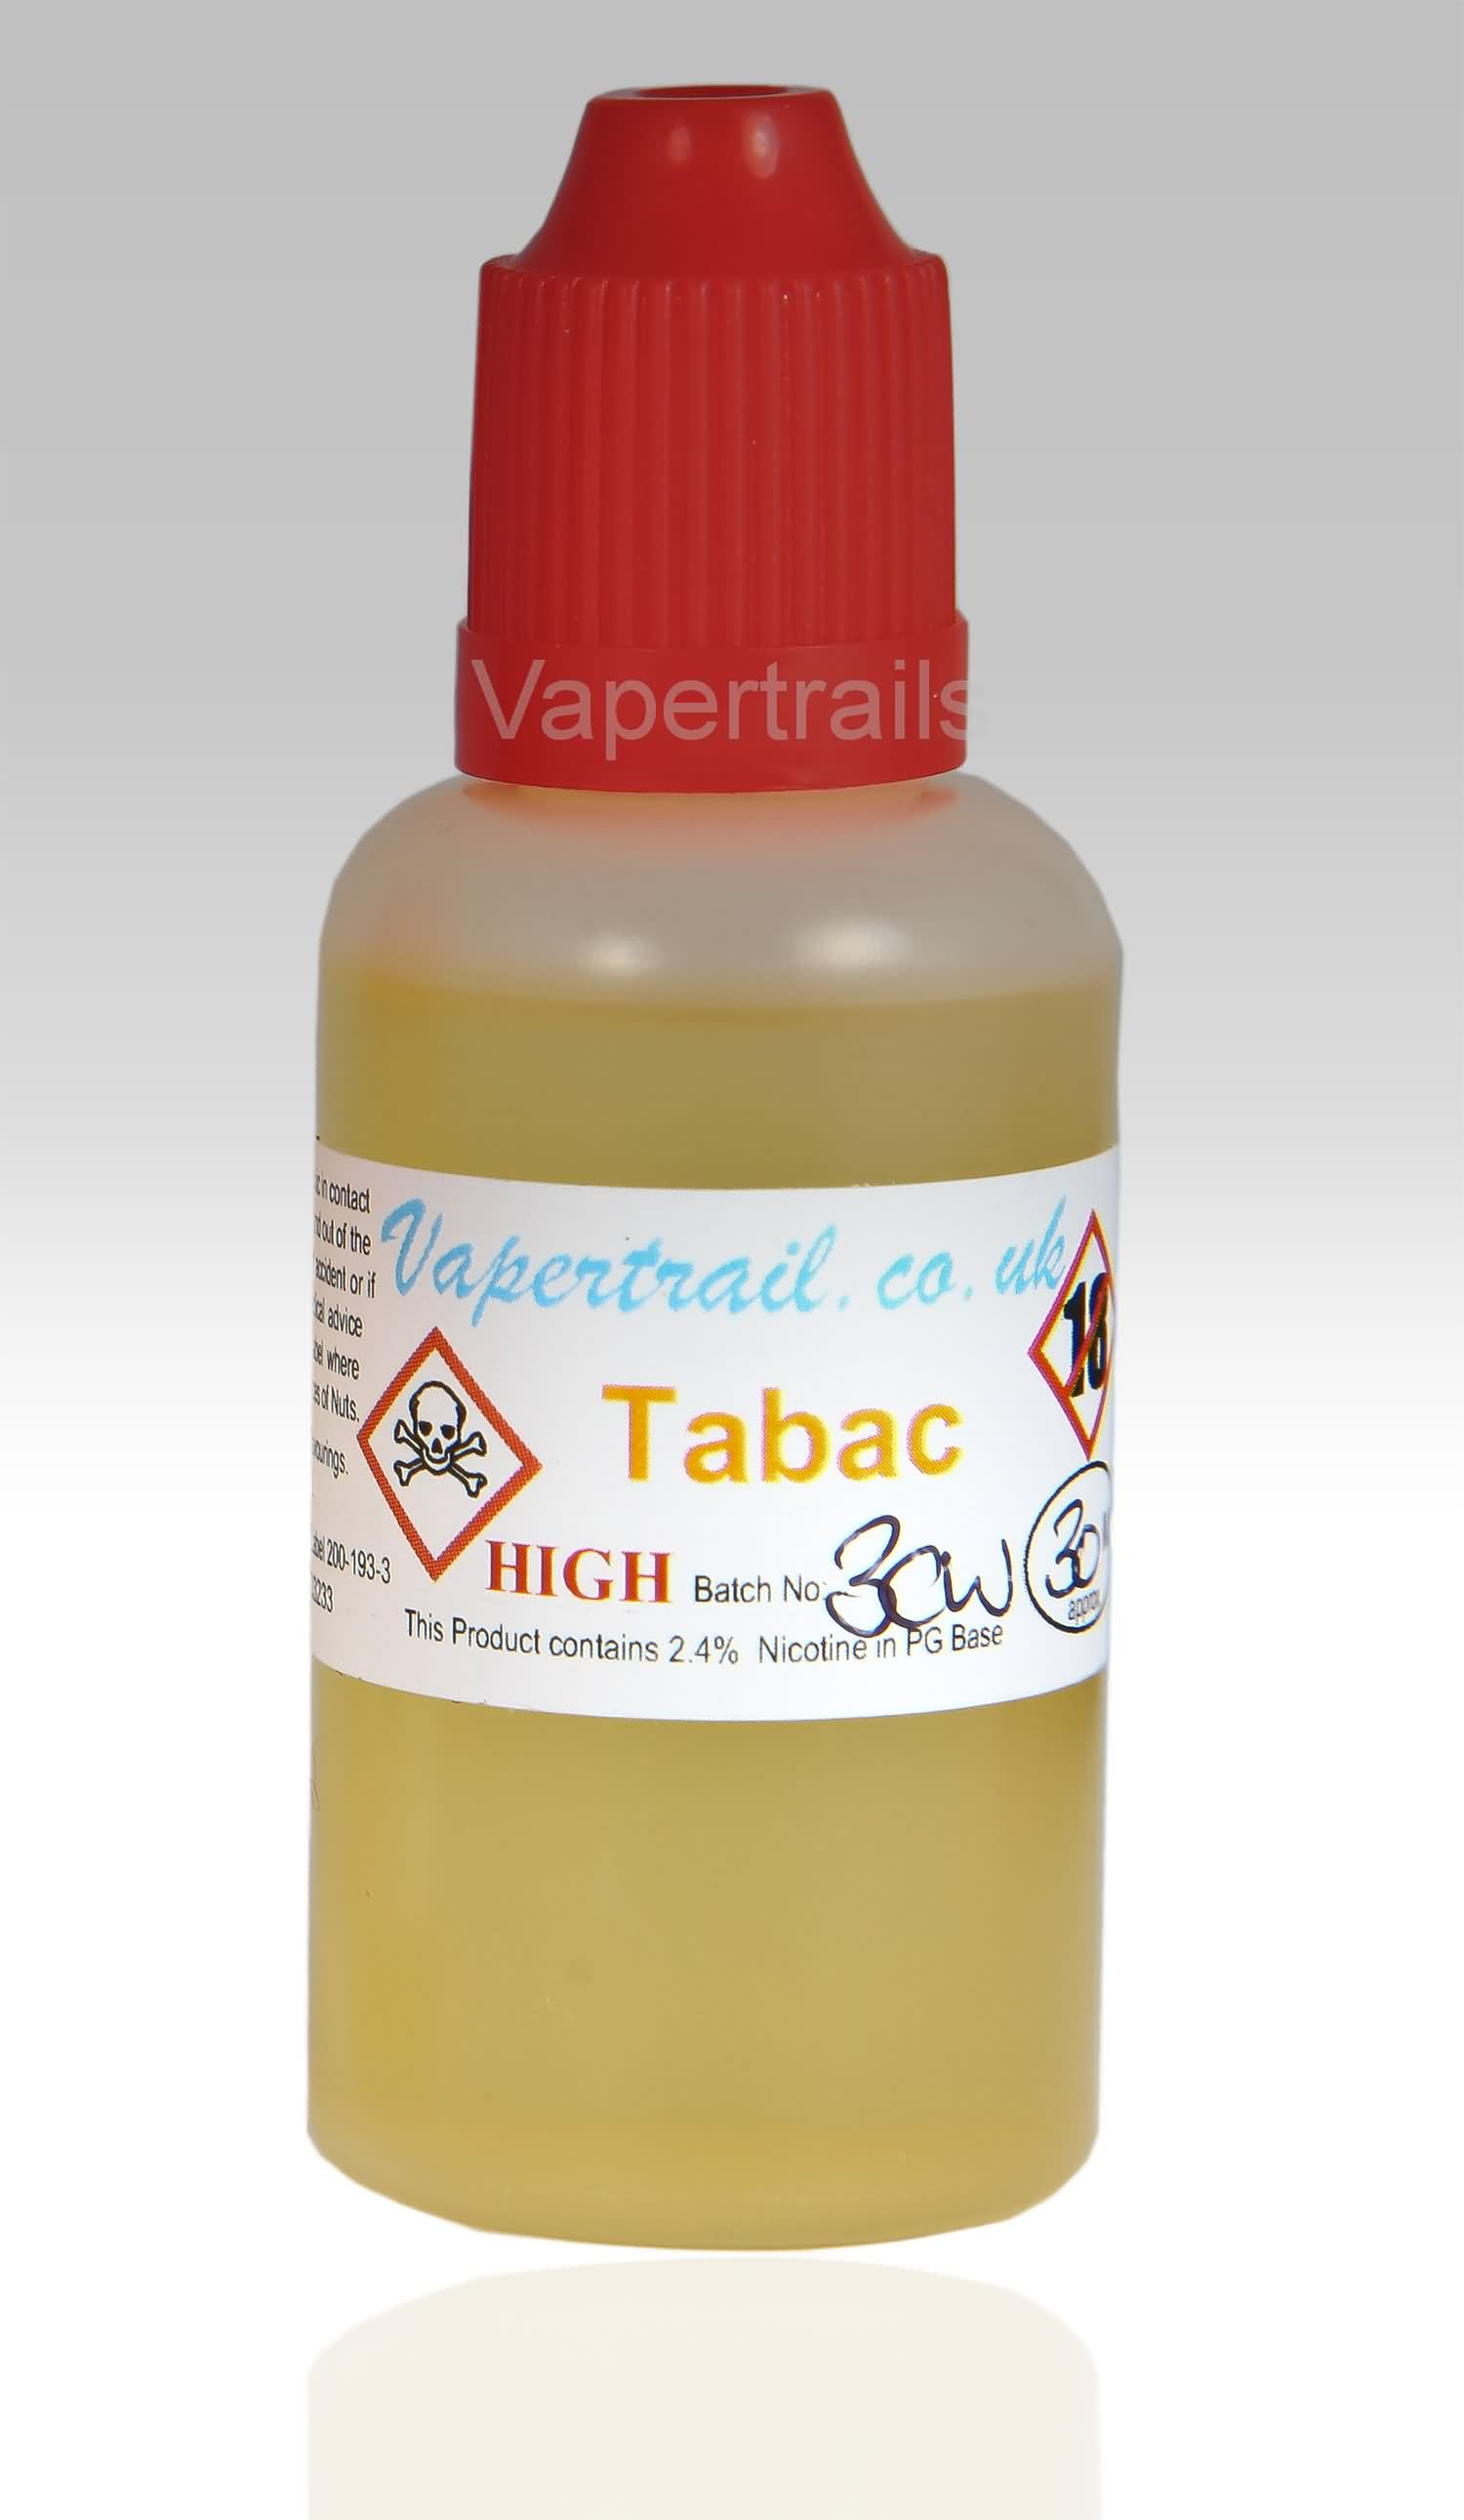 vaper-trails-e-liquid